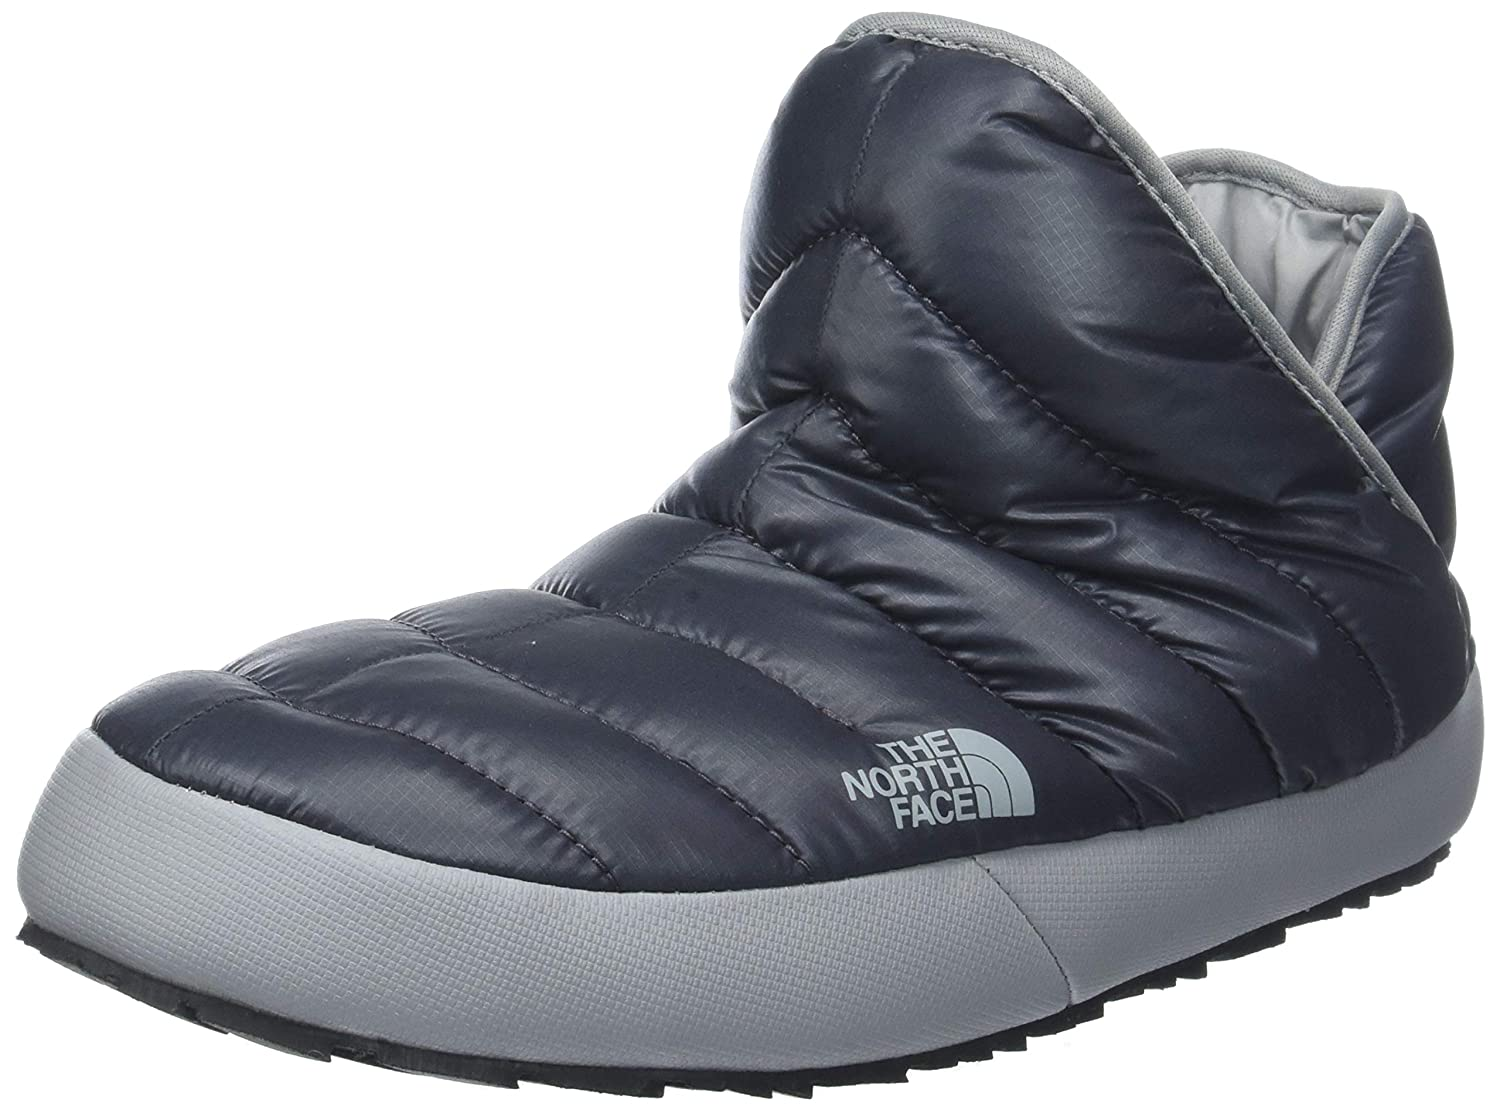 The The The North Face Thermoball Traction, Stivali da Neve Uomo e4ae52